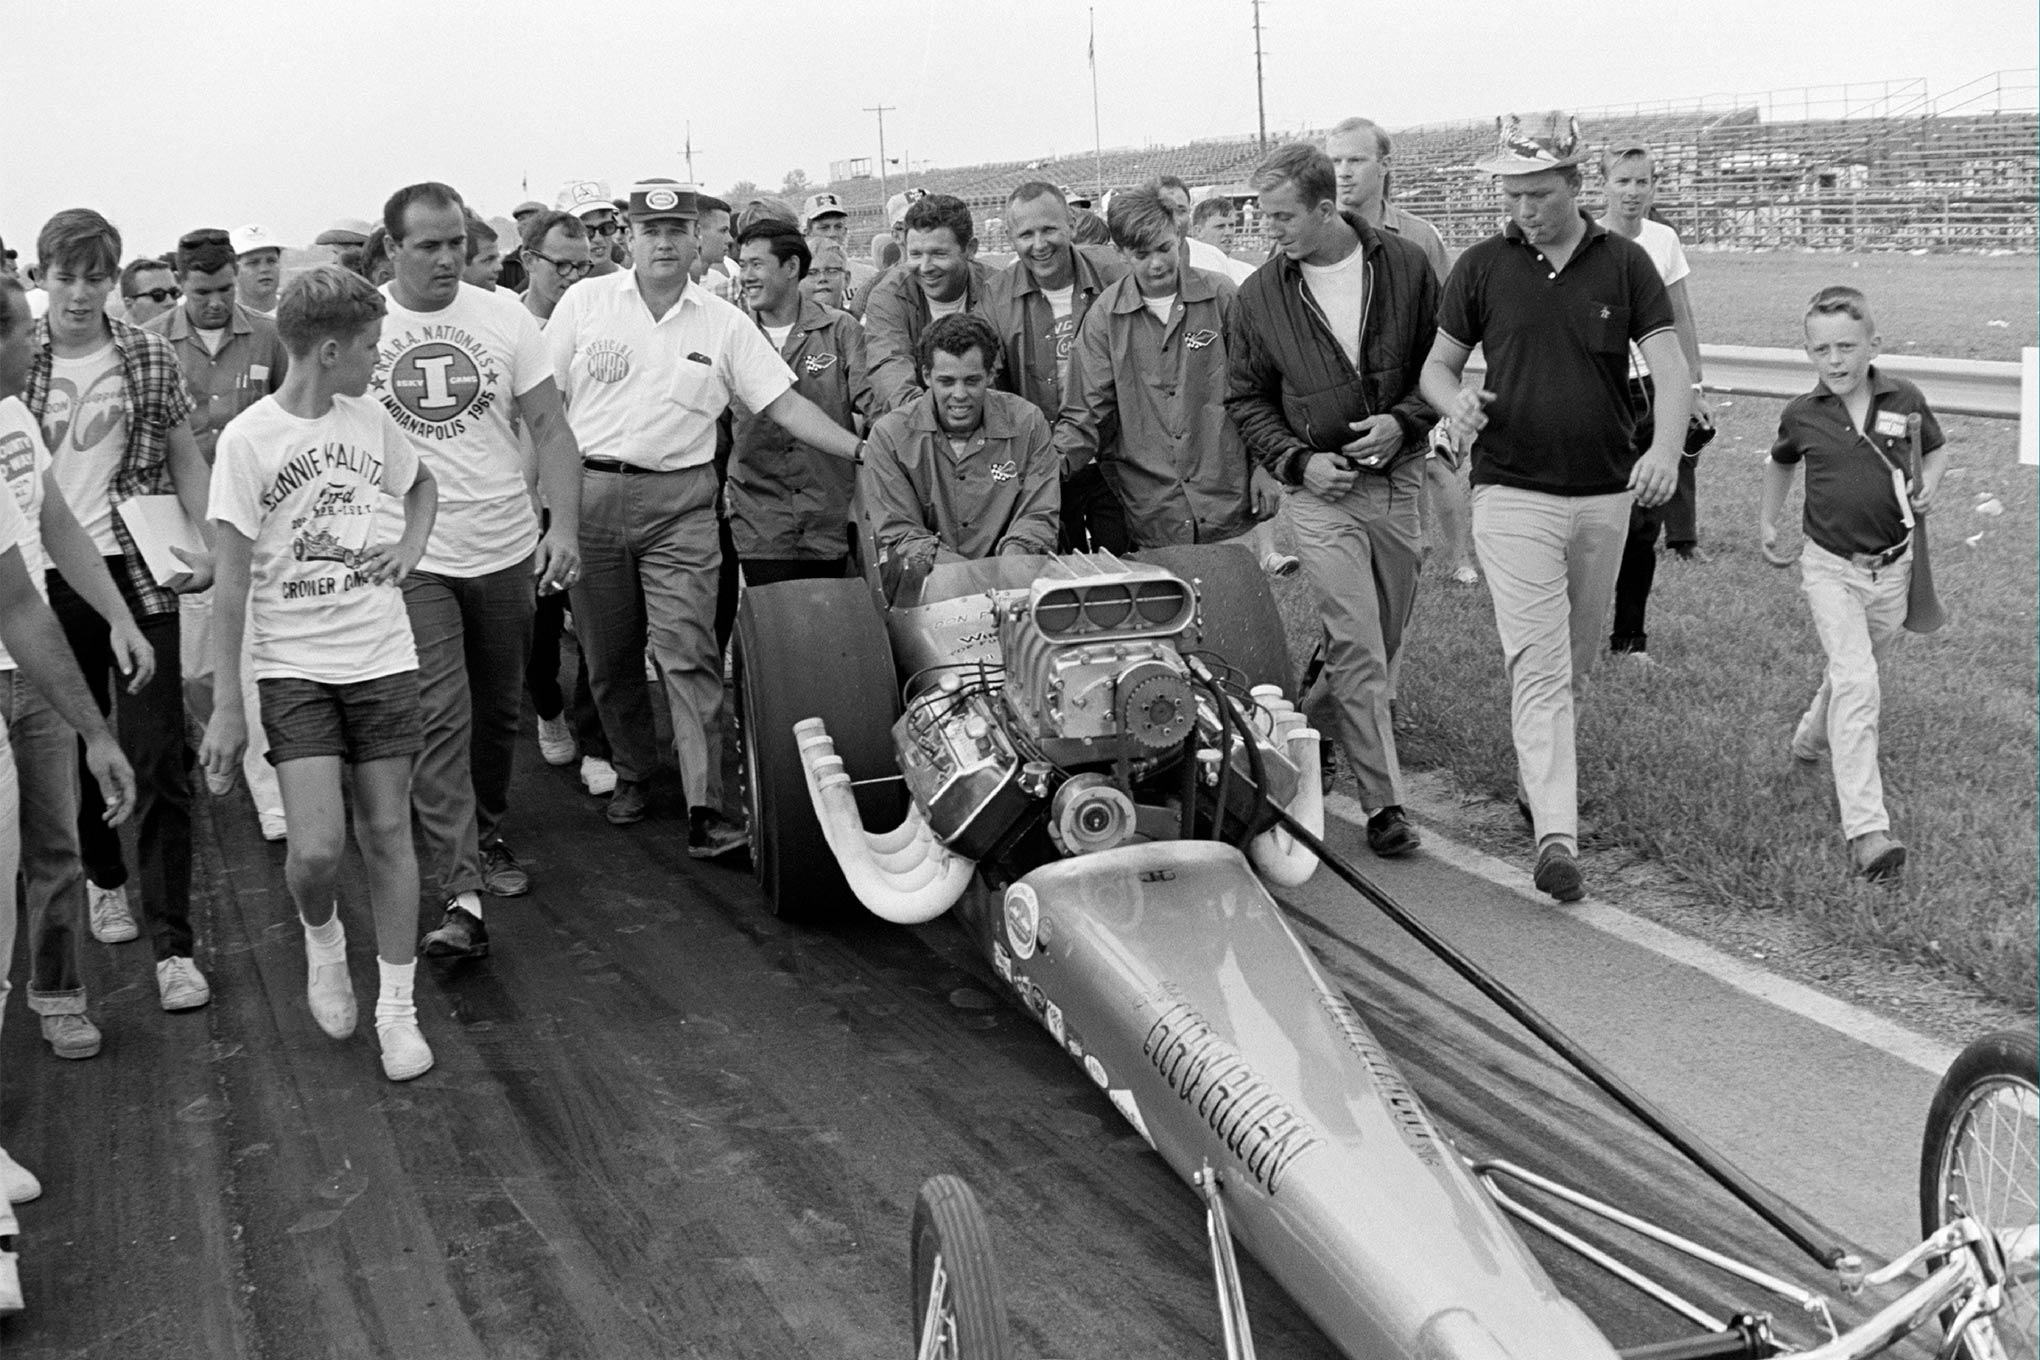 The scene of smiles immediately after winning the final round at the 1965 Indy Nationals.